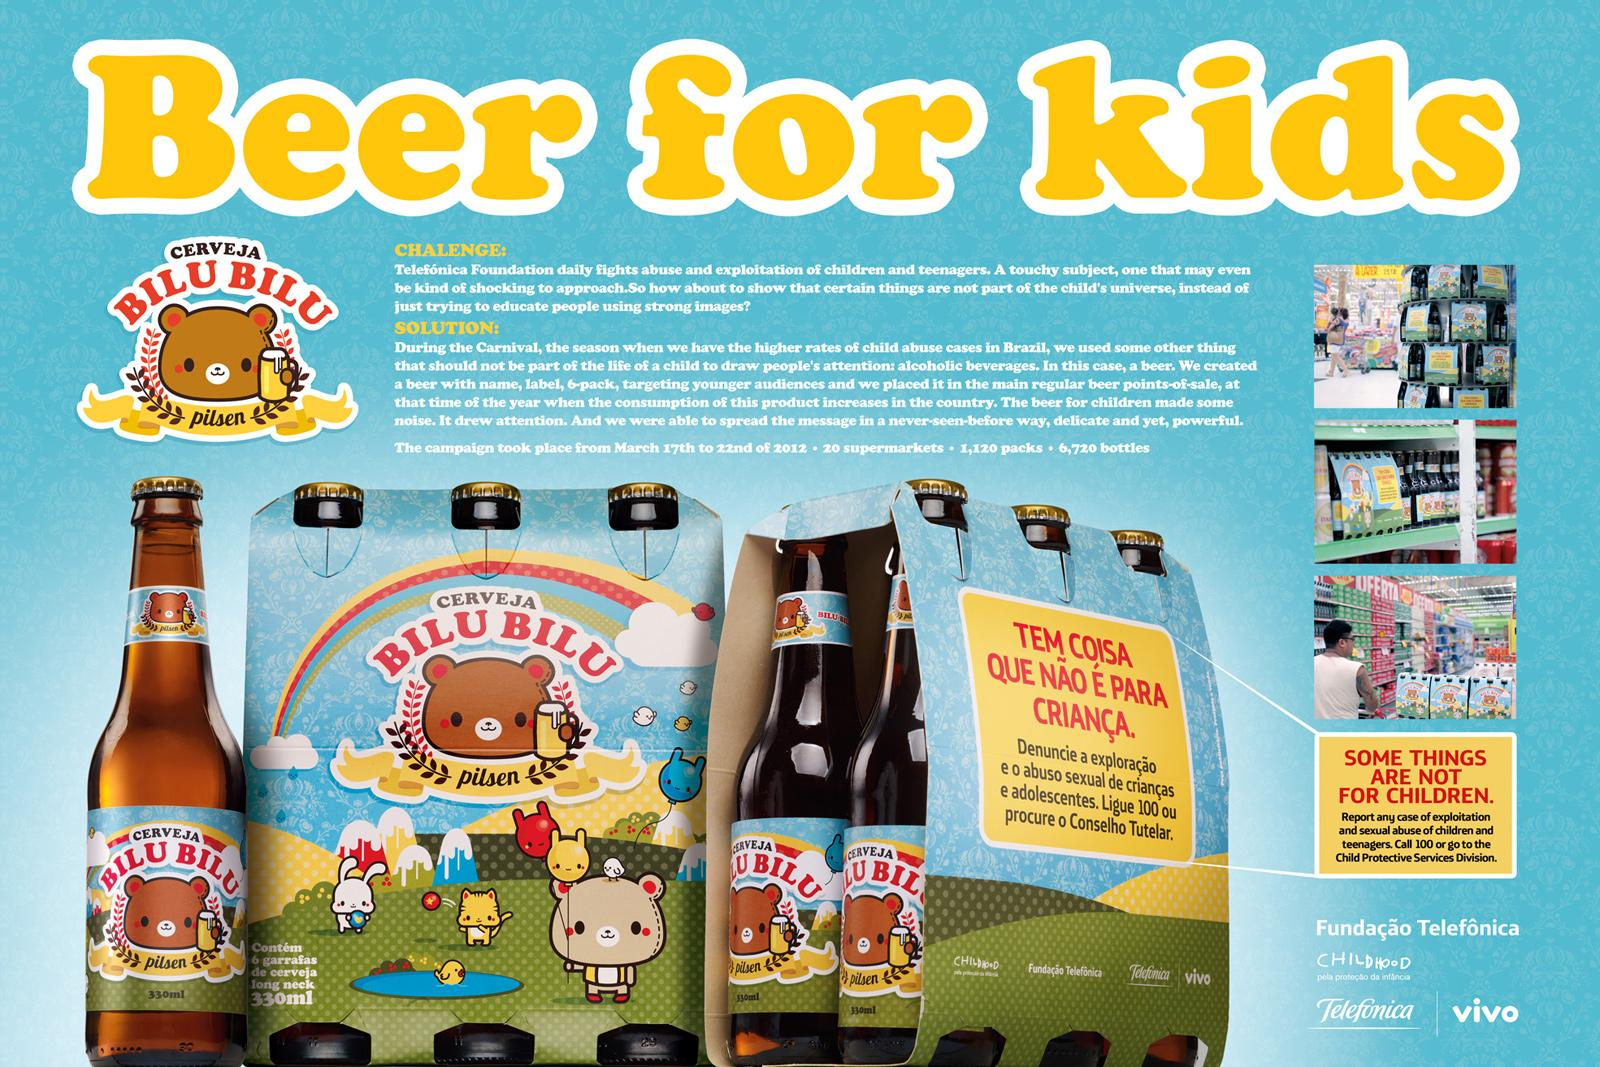 Telefónica Direct Ad -  Beer for kids